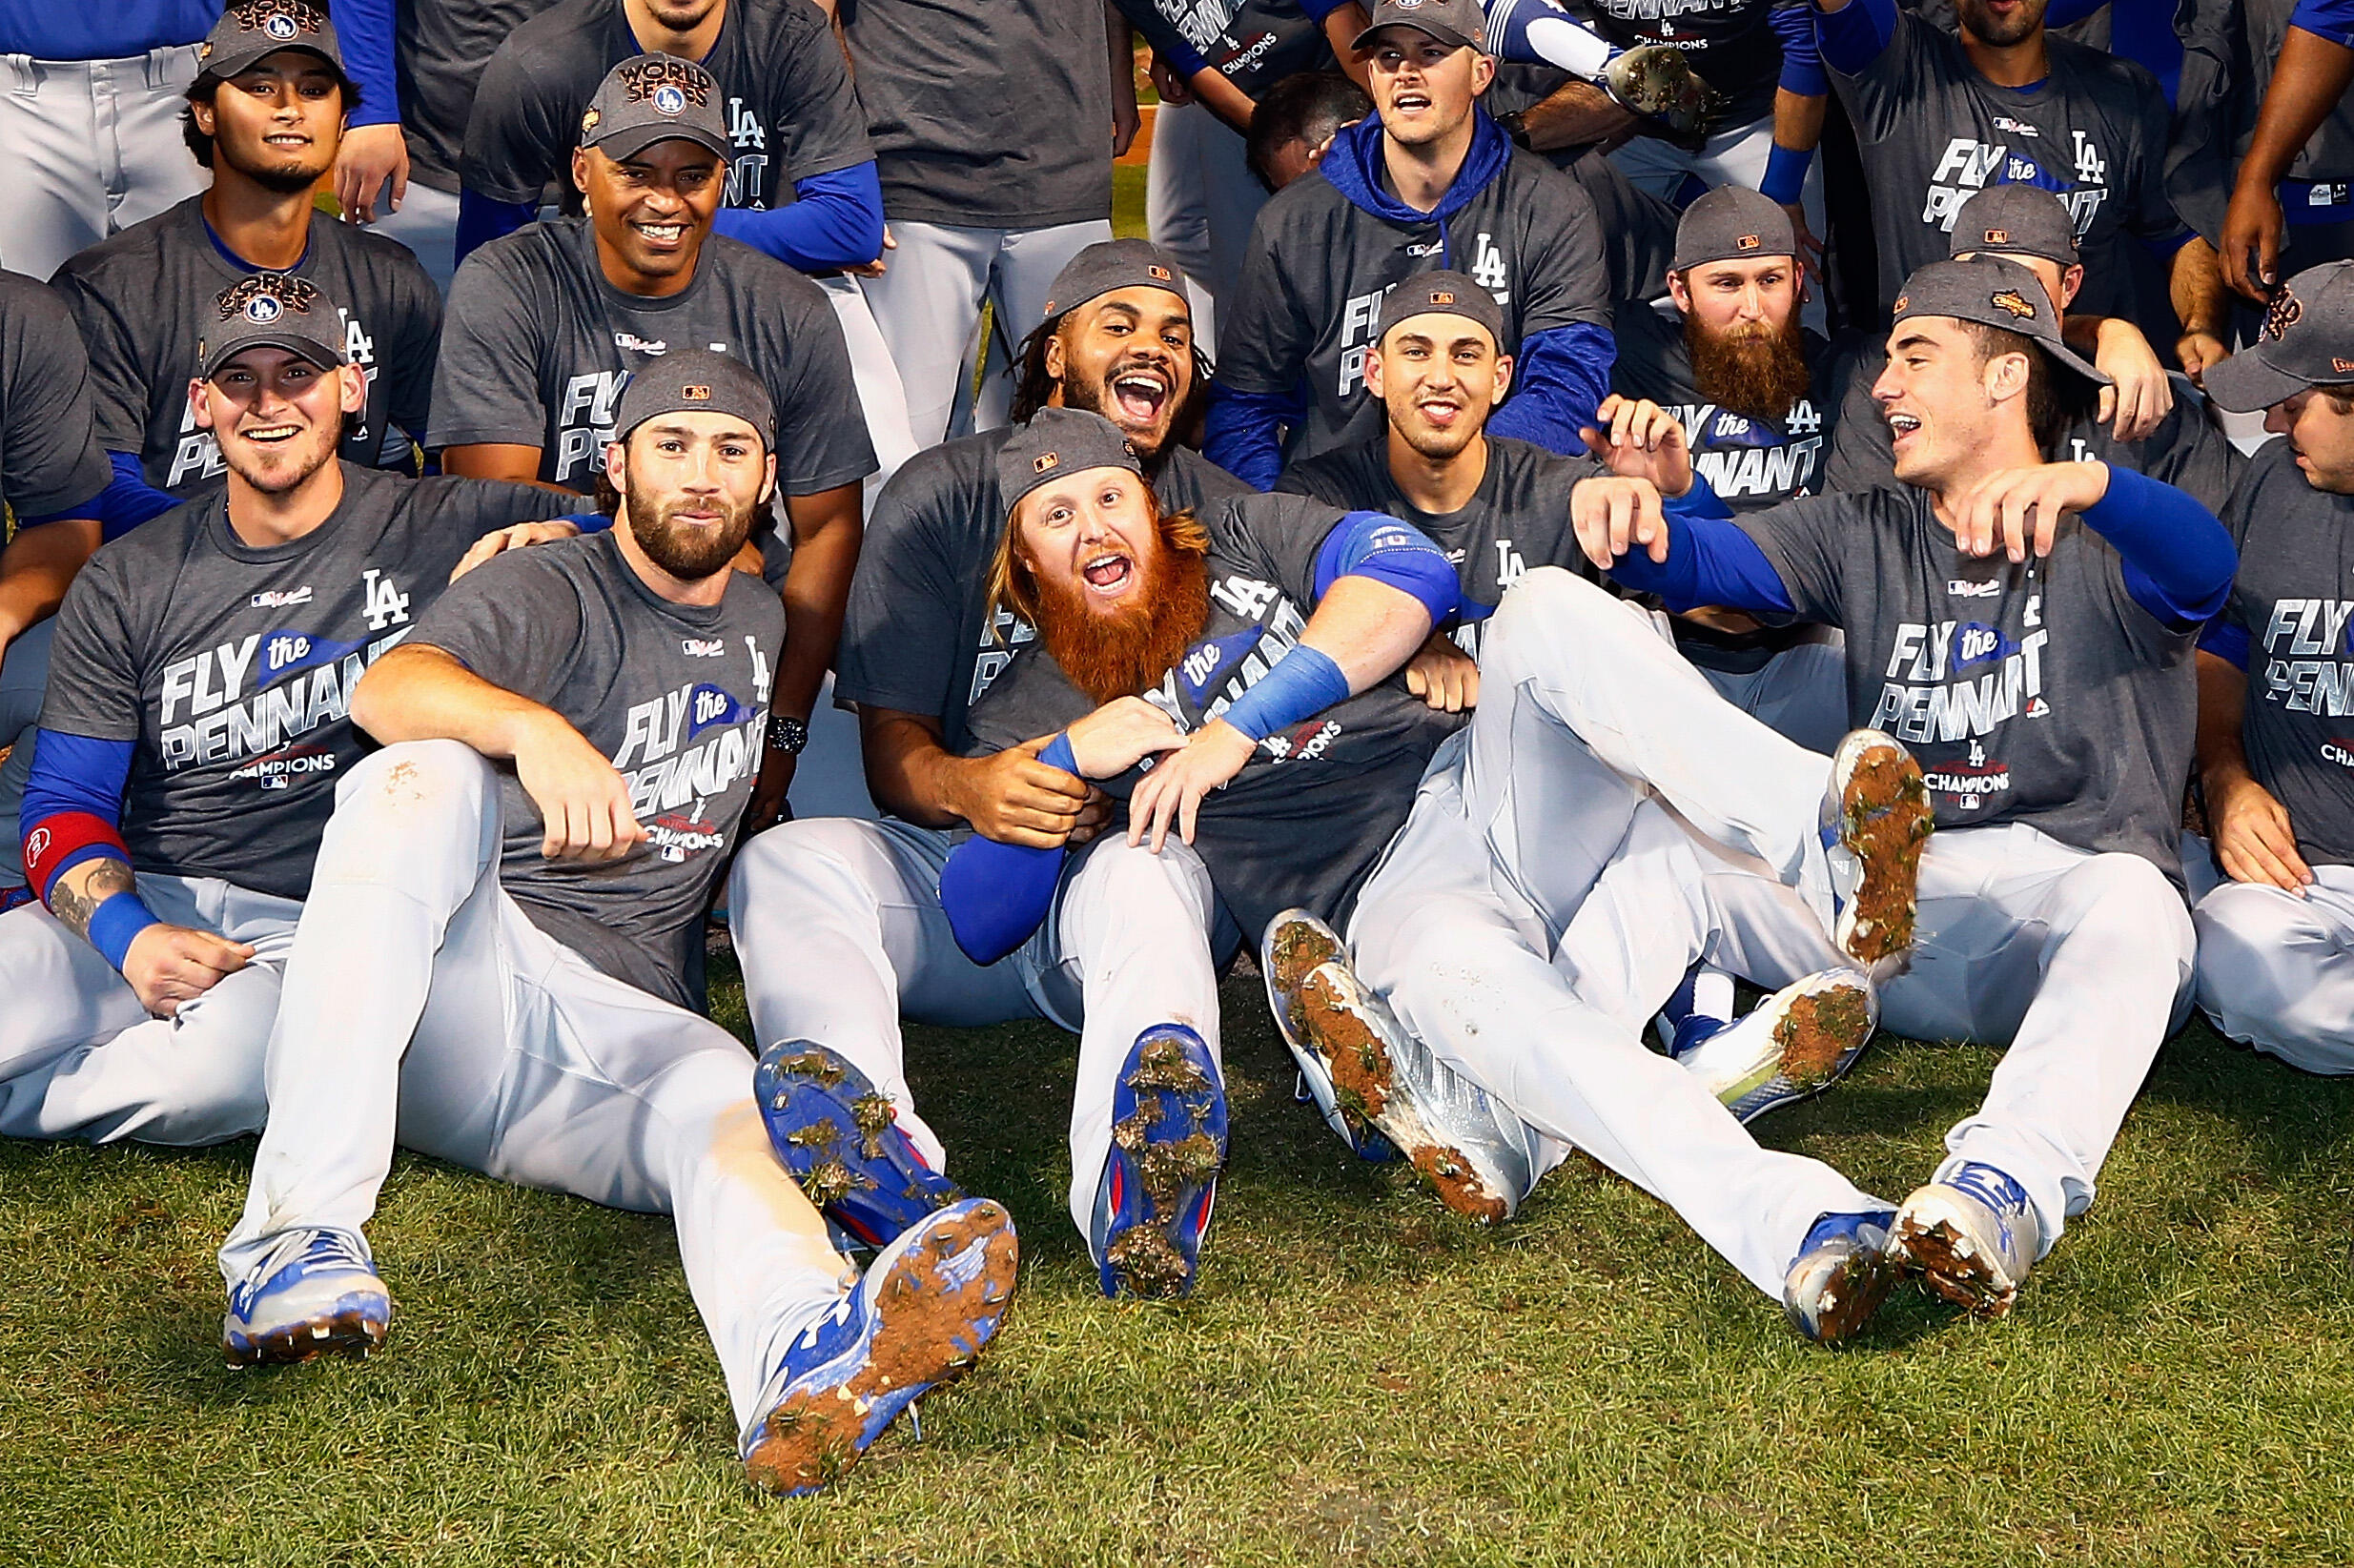 Dodgers advance to World Series: Full Celebration Coverage